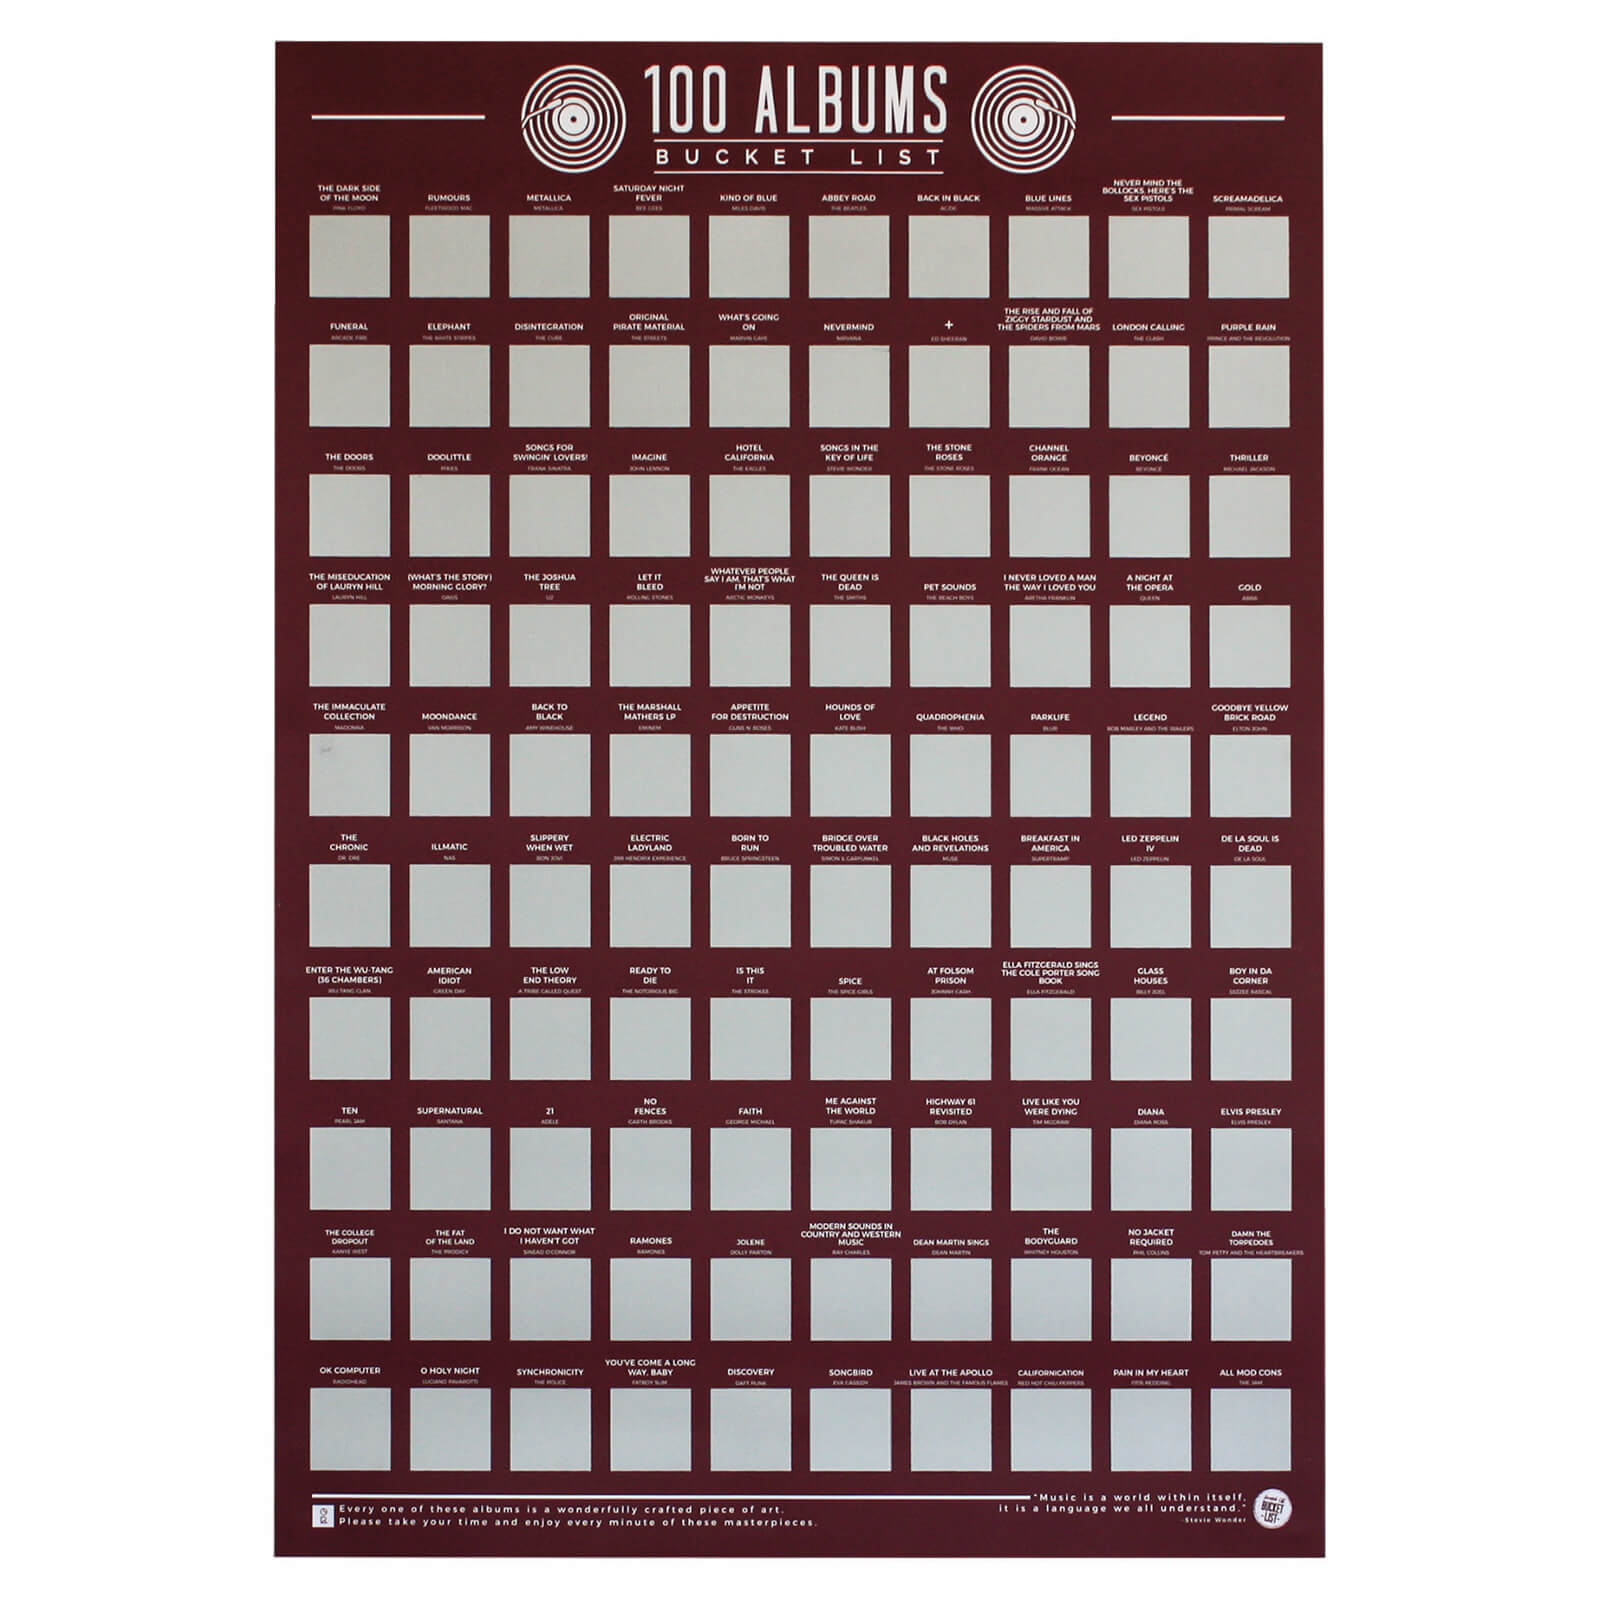 100 Albums Bucket List Poster